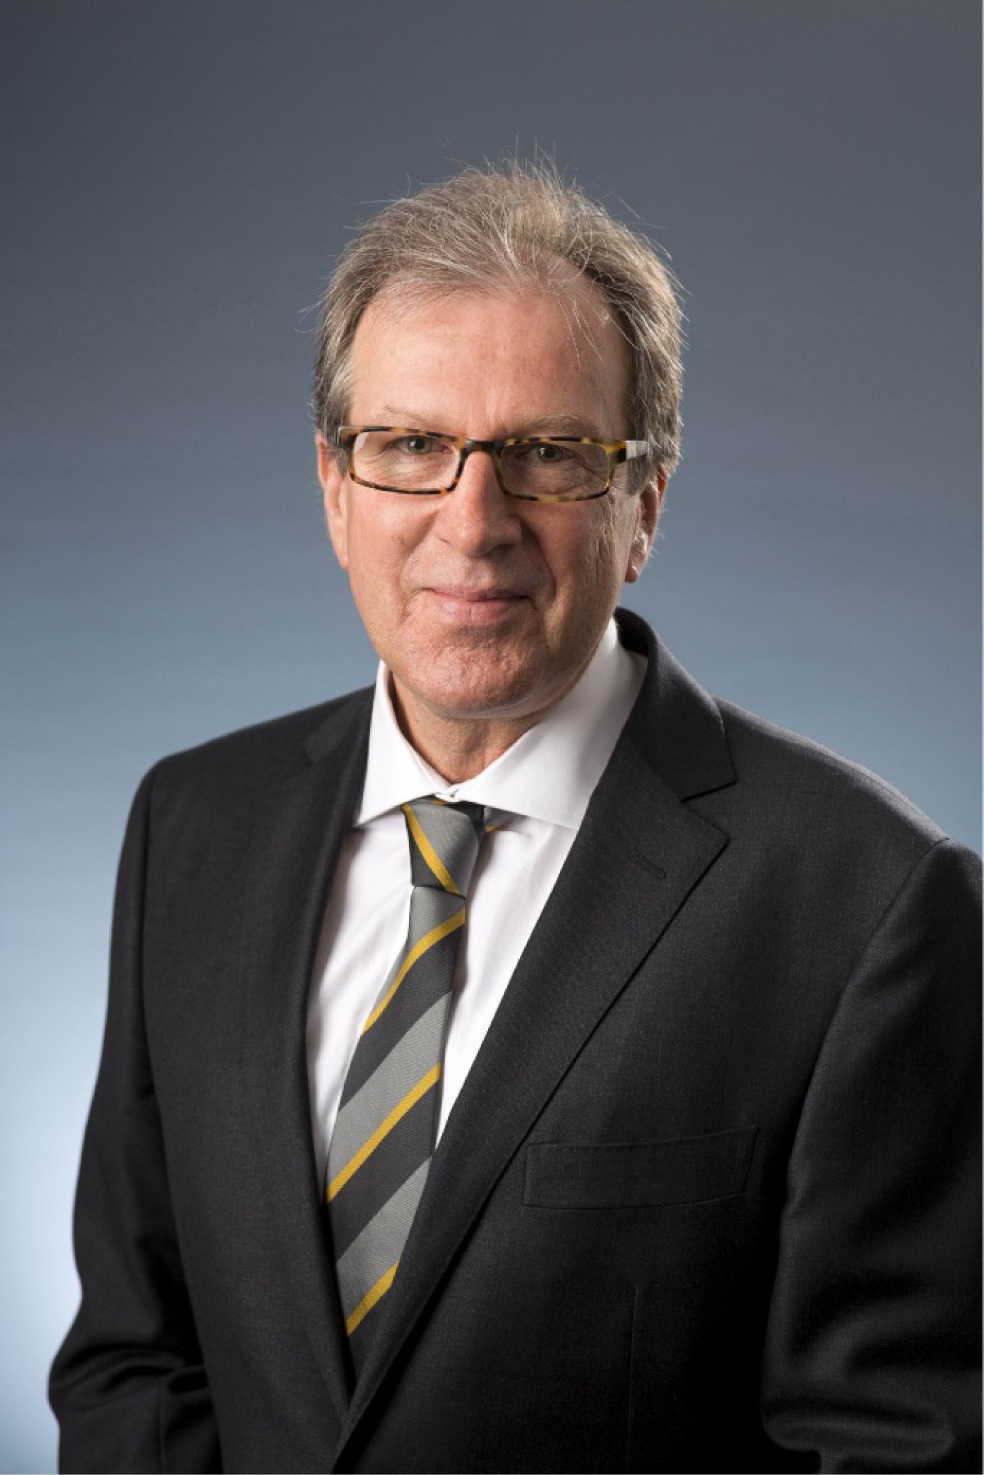 City of South Perth chief executive Geoff Glass